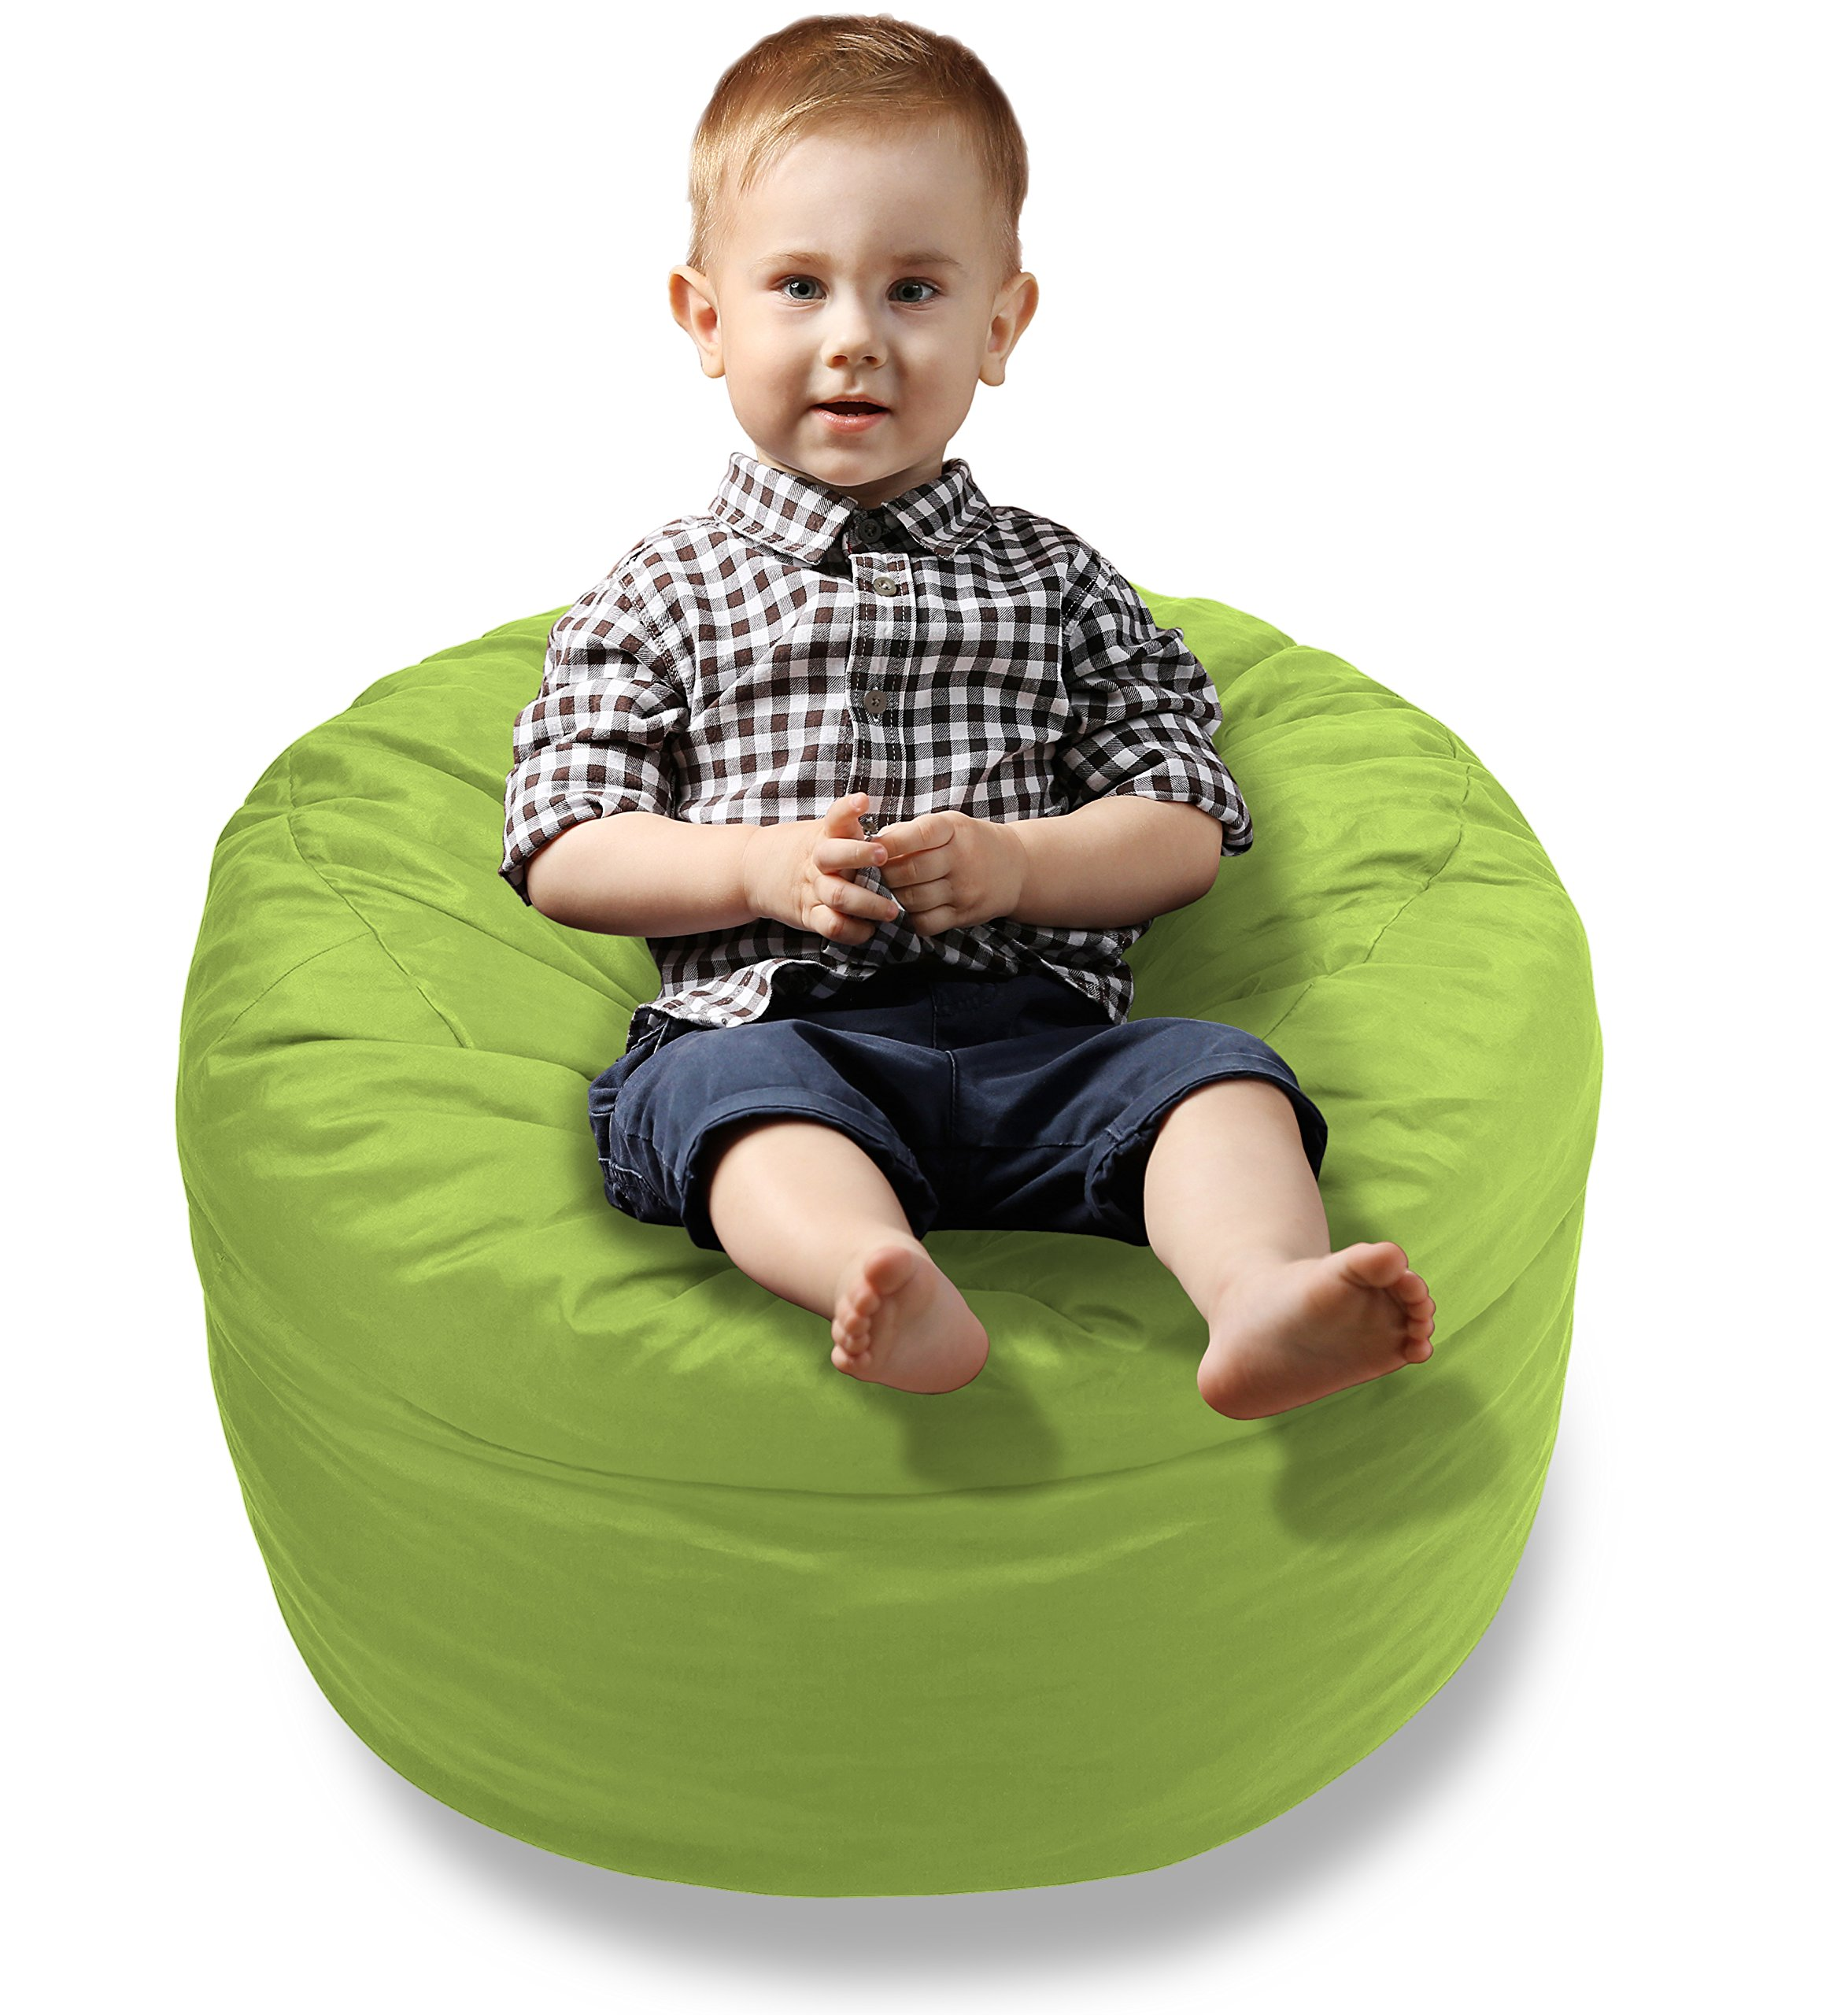 BeanBob Bean Bag Chair Cushion (Lime Green) 2ft - Bedroom Sitting Sack for Toddlers & Small Children w/Super Soft Foam Filling by BeanBob